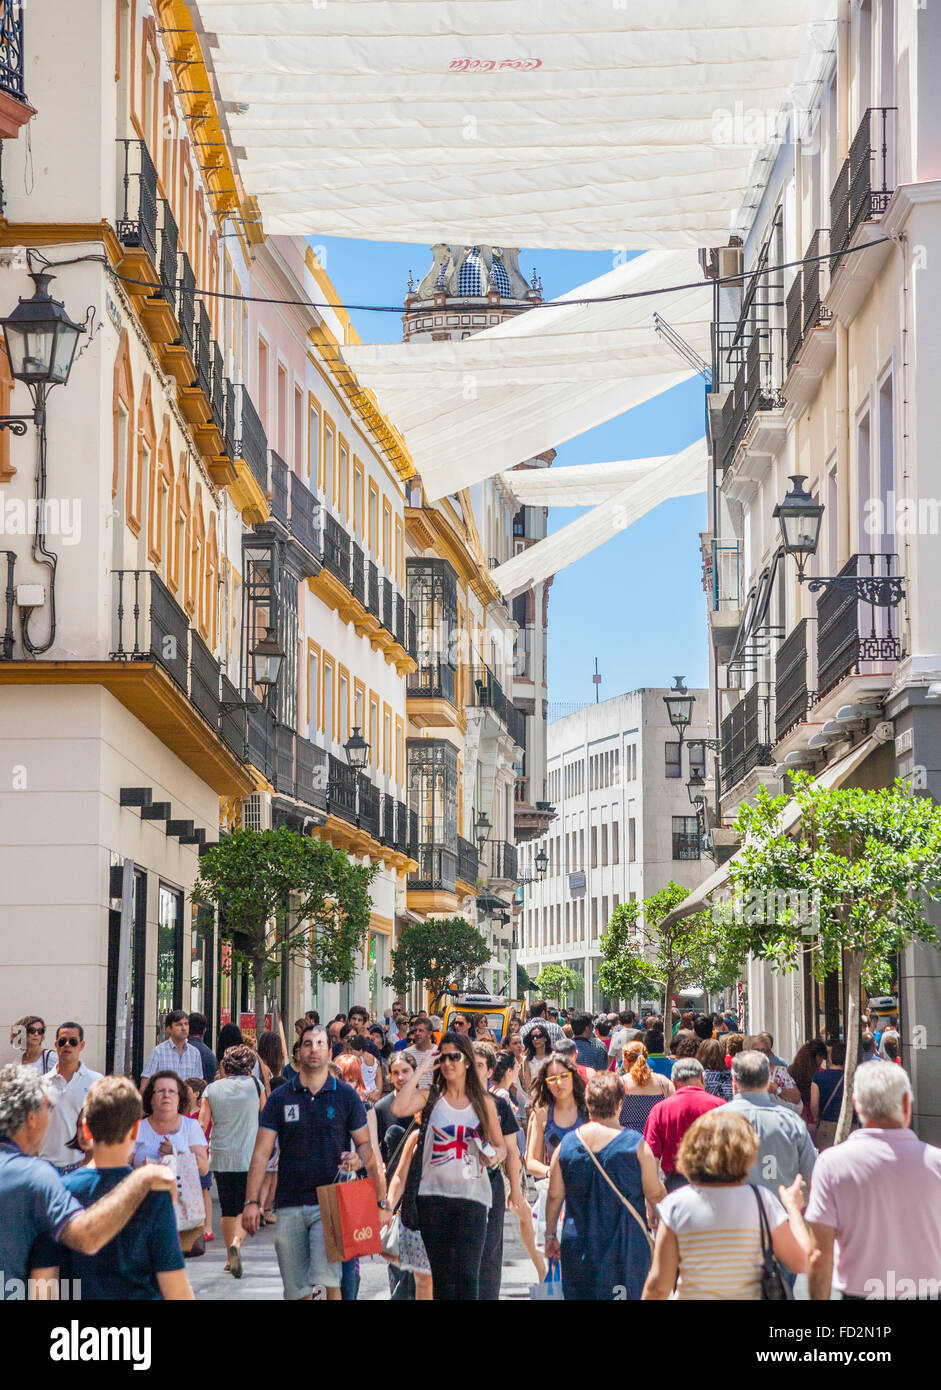 Spain, Andalusia, Province of Seville, Seville, Casco Antiguo, sun shades at Calle Tetuan pedestrian mall - Stock Image